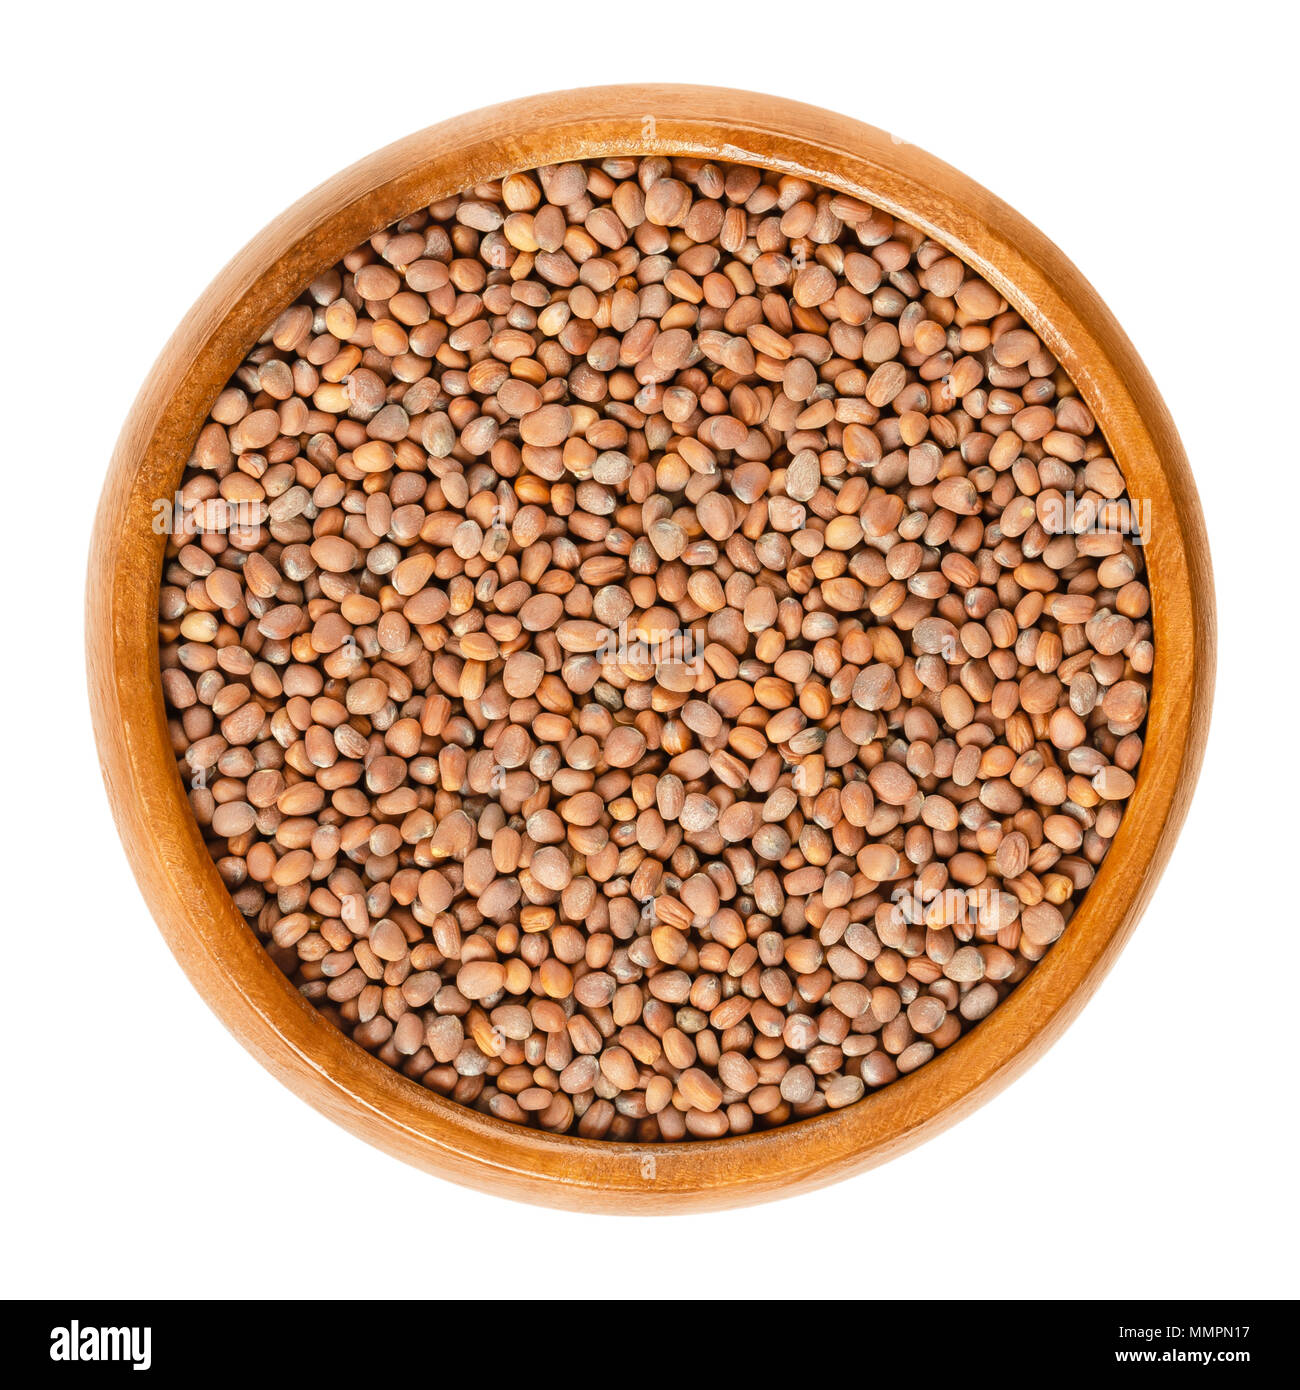 Daikon radish seeds in wooden bowl. Winter, Japanese or oriental radish. Raphanus sativus. Seeds for sprouting and consumption. Isolated macro photo. - Stock Image